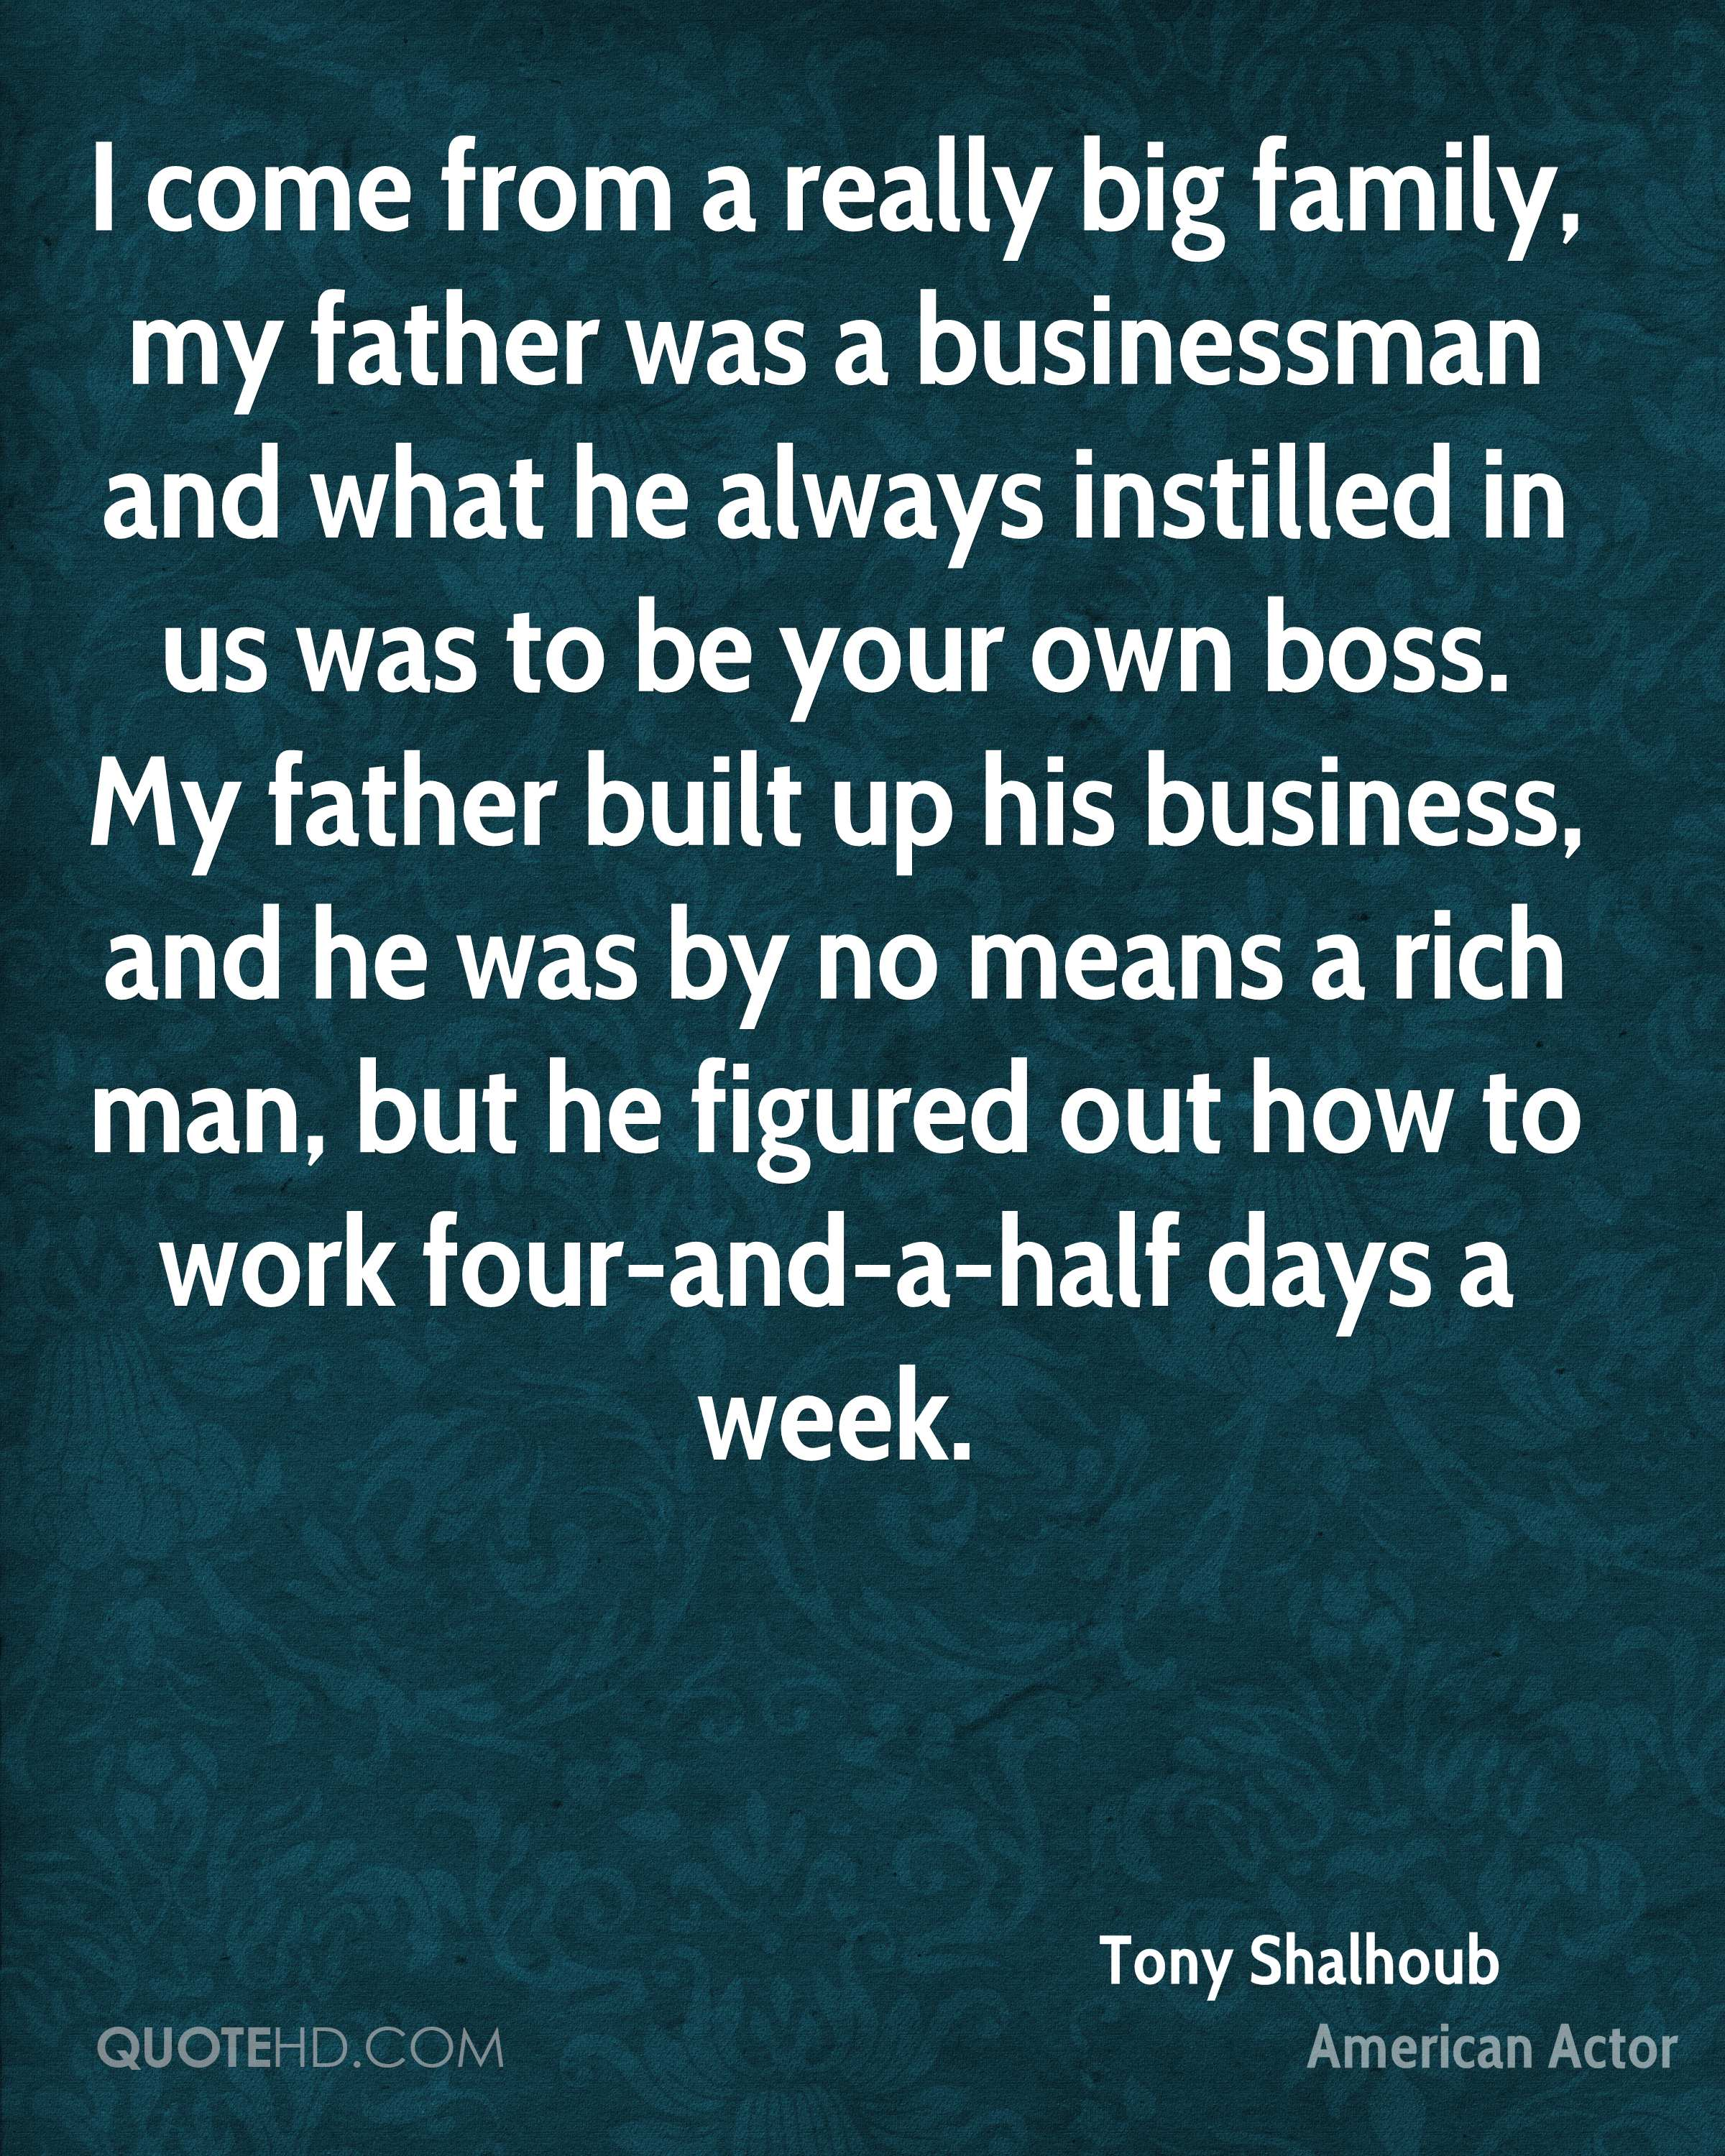 I come from a really big family, my father was a businessman and what he always instilled in us was to be your own boss. My father built up his business, and he was by no means a rich man, but he figured out how to work four-and-a-half days a week.